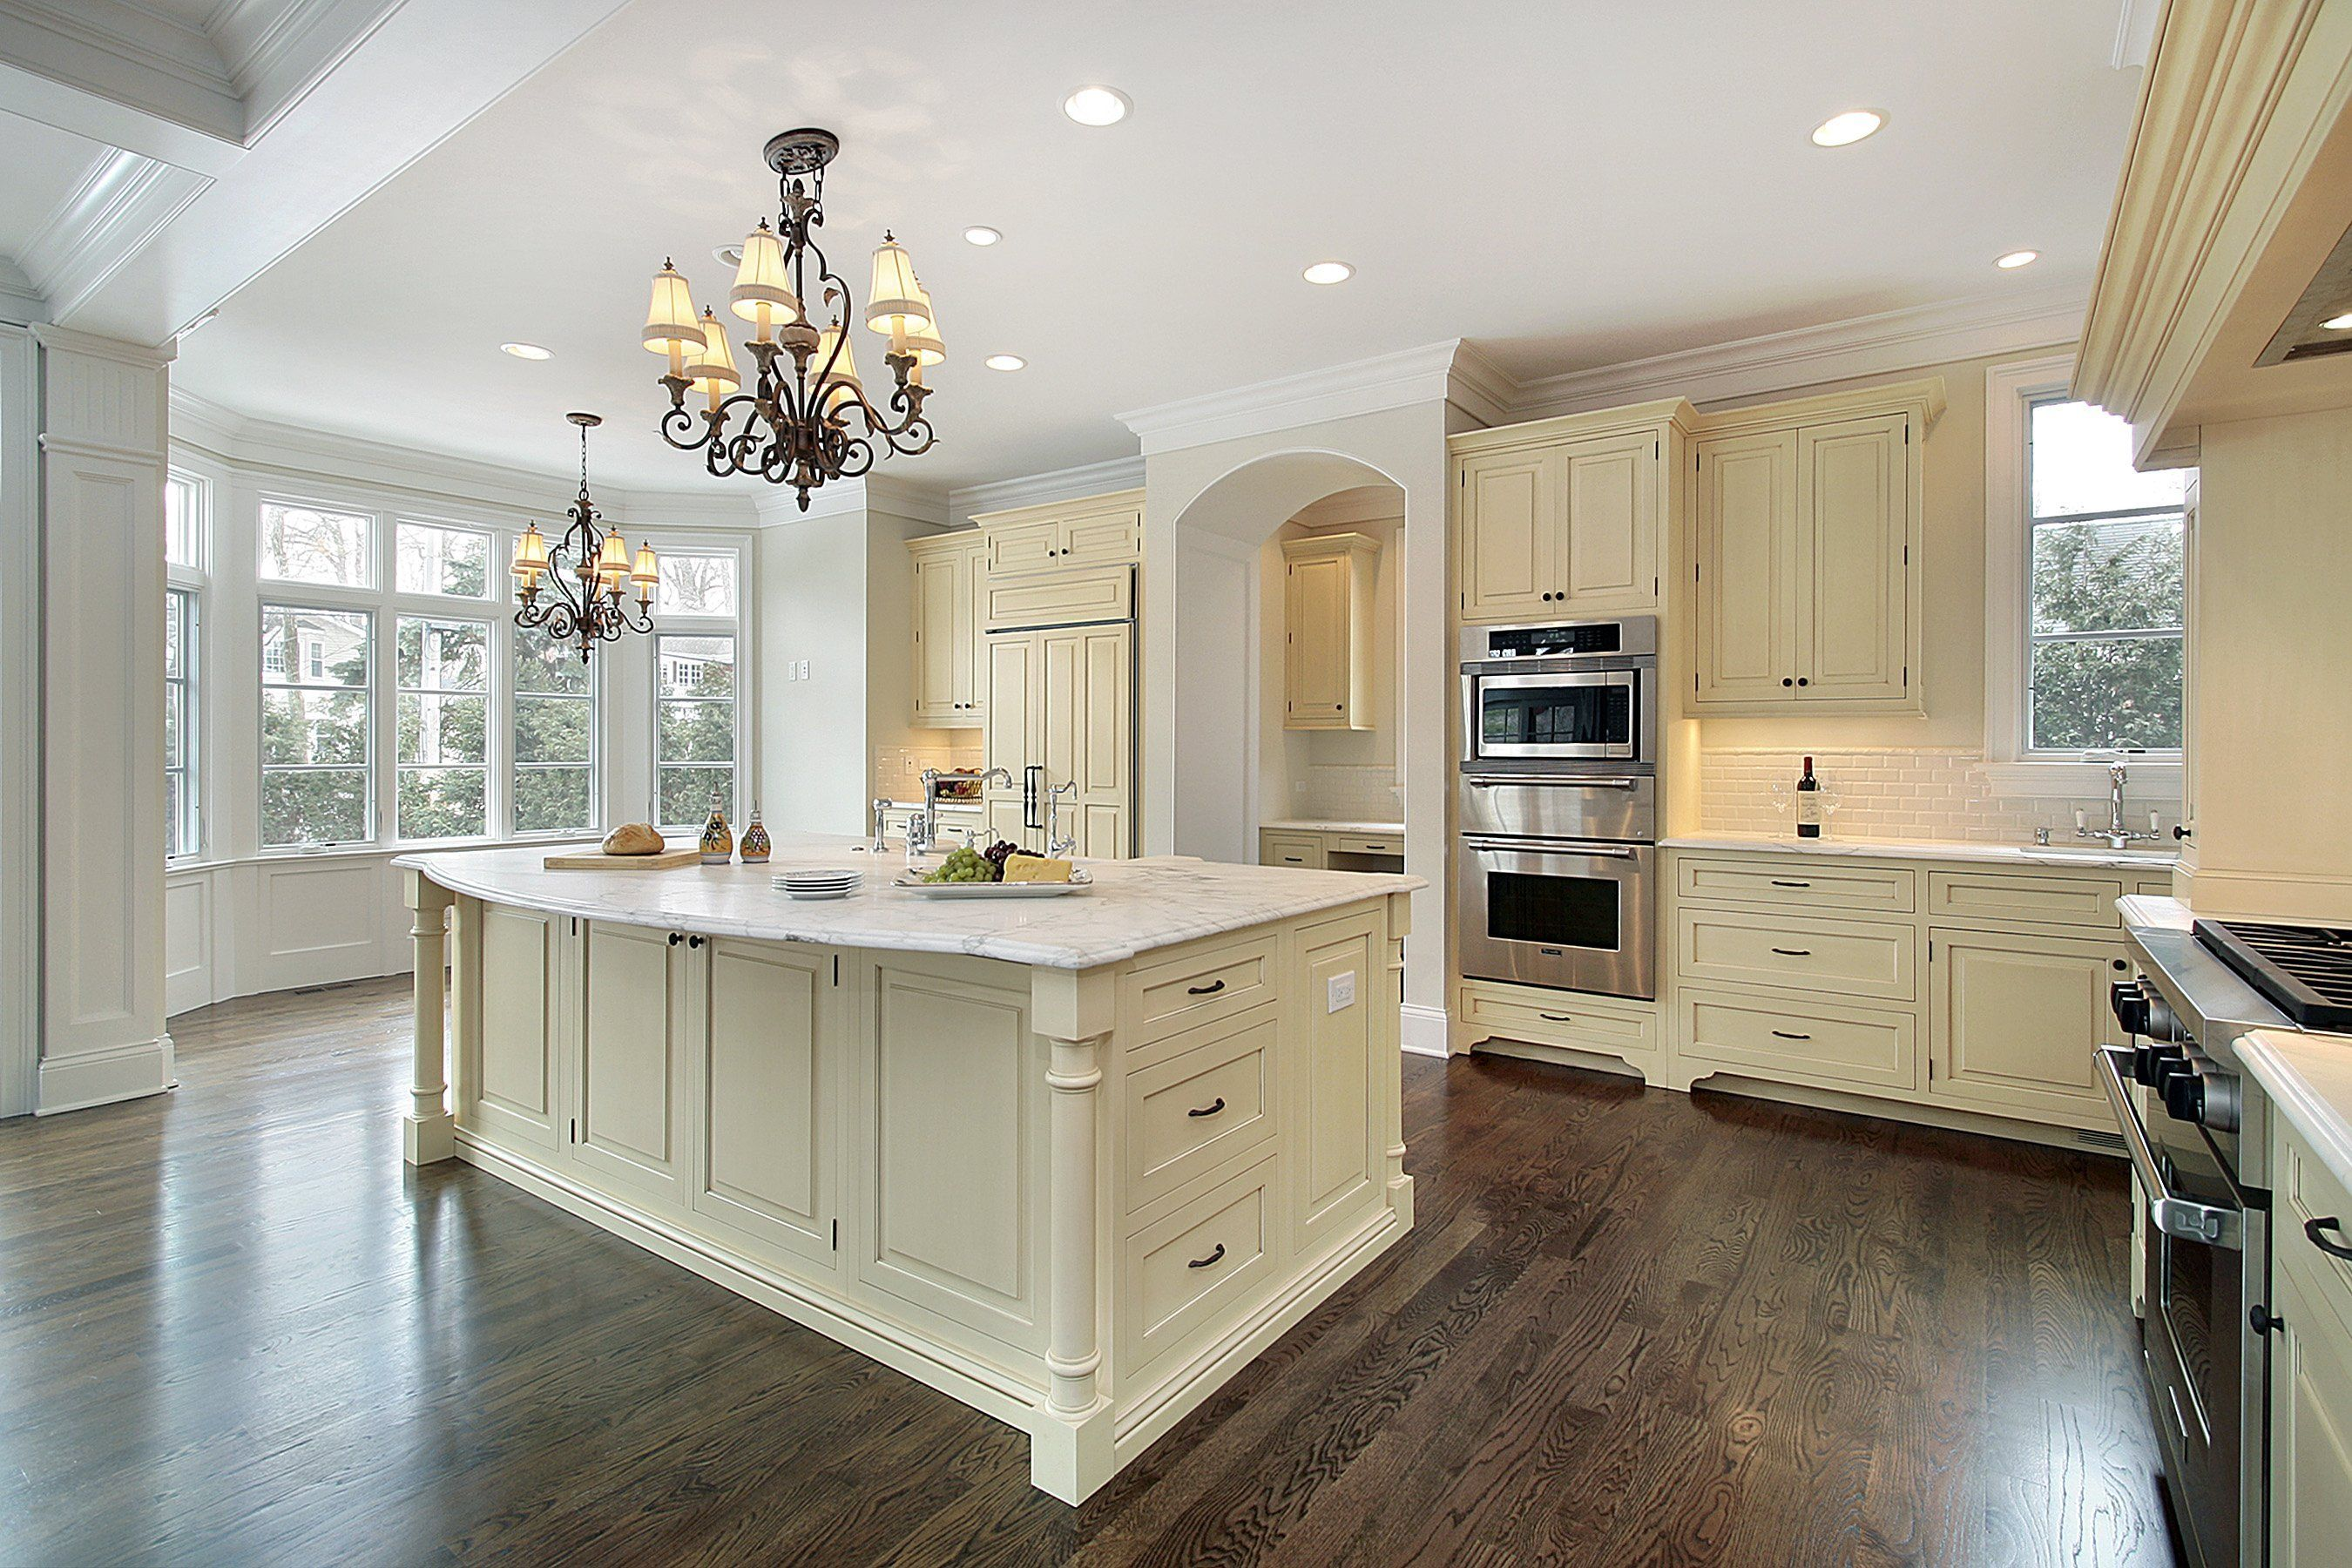 Classic Kitchen With Off White Cabinets White Tile Backsplash And Marble Counte Antique White Kitchen Antique White Kitchen Cabinets Off White Kitchen Cabinets